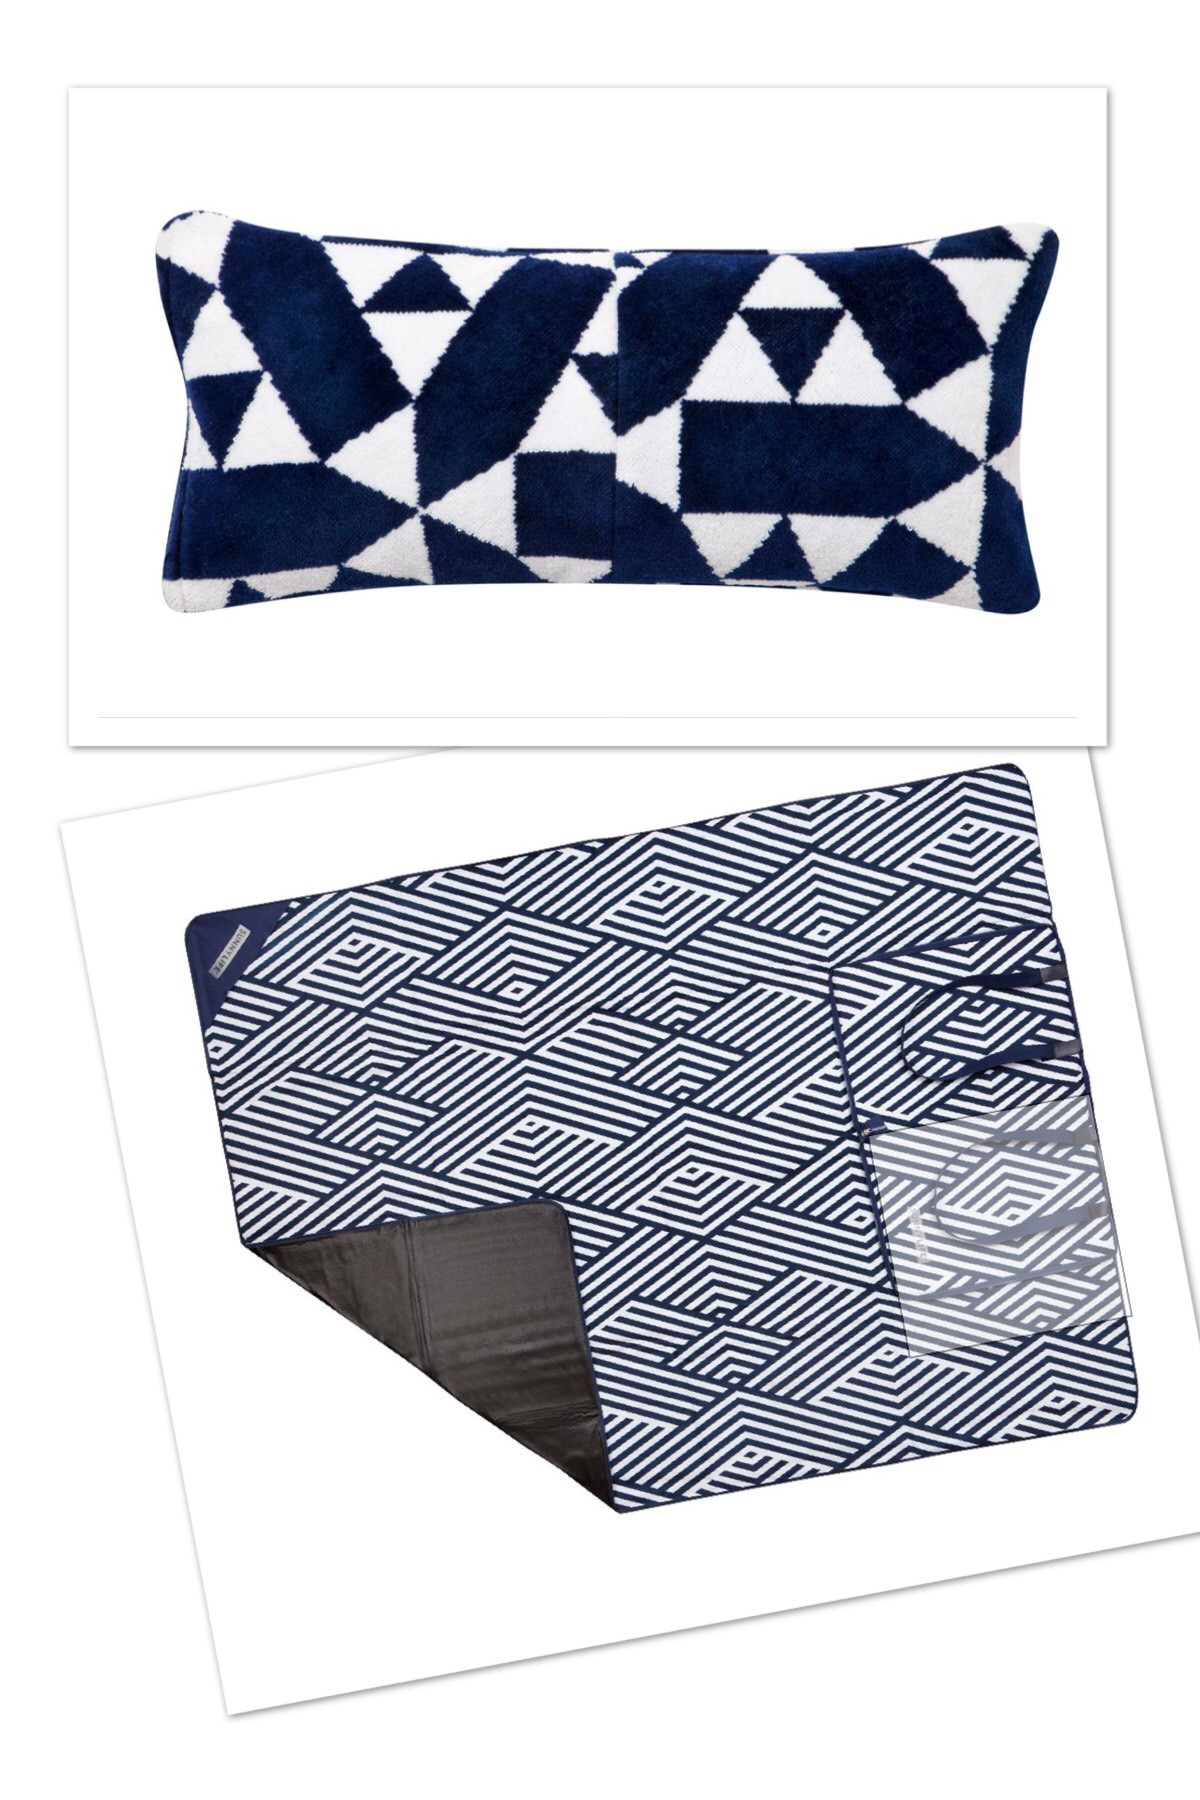 Lounge-Worthy Accessories: Outdoor Pillows and Blankets